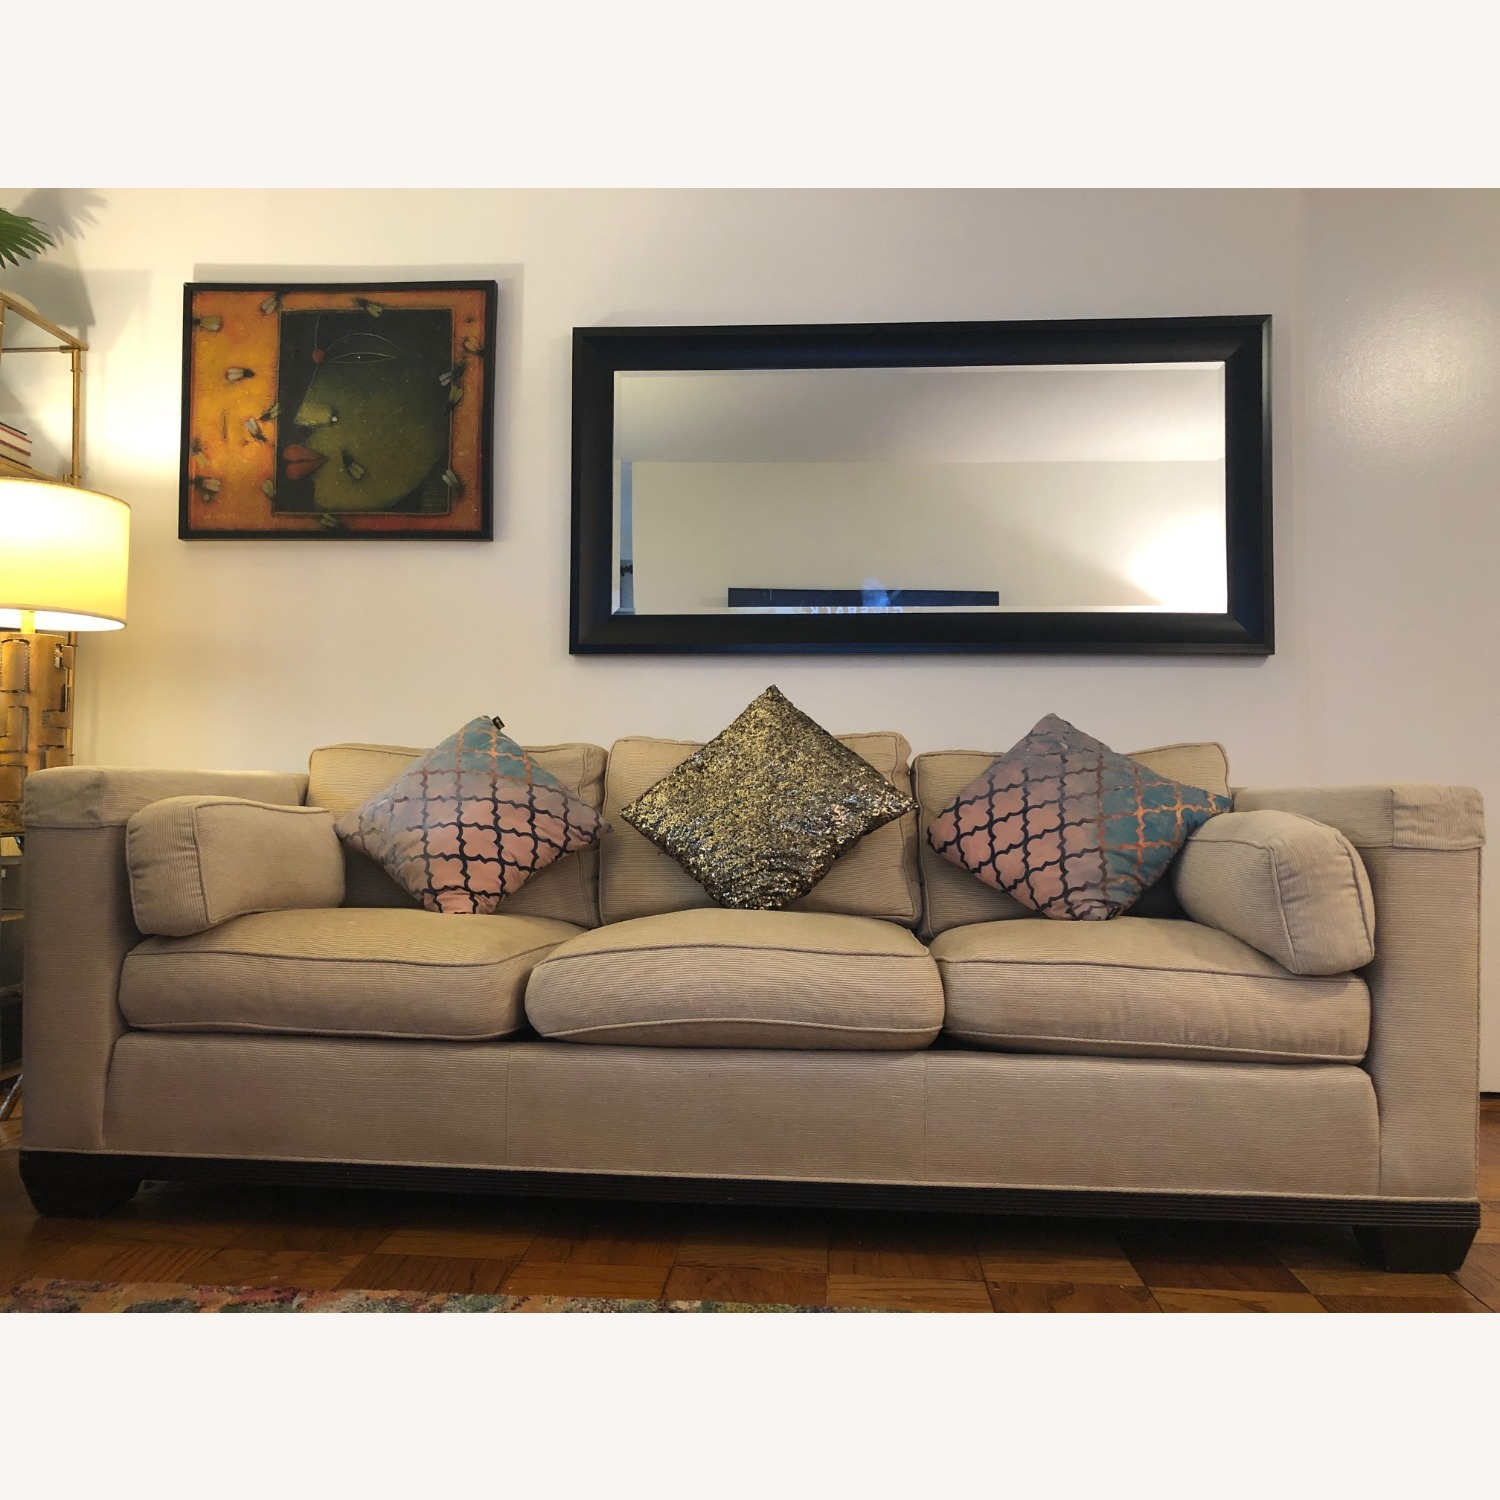 Baker Barabara Barry Reided Base Sofa - image-0